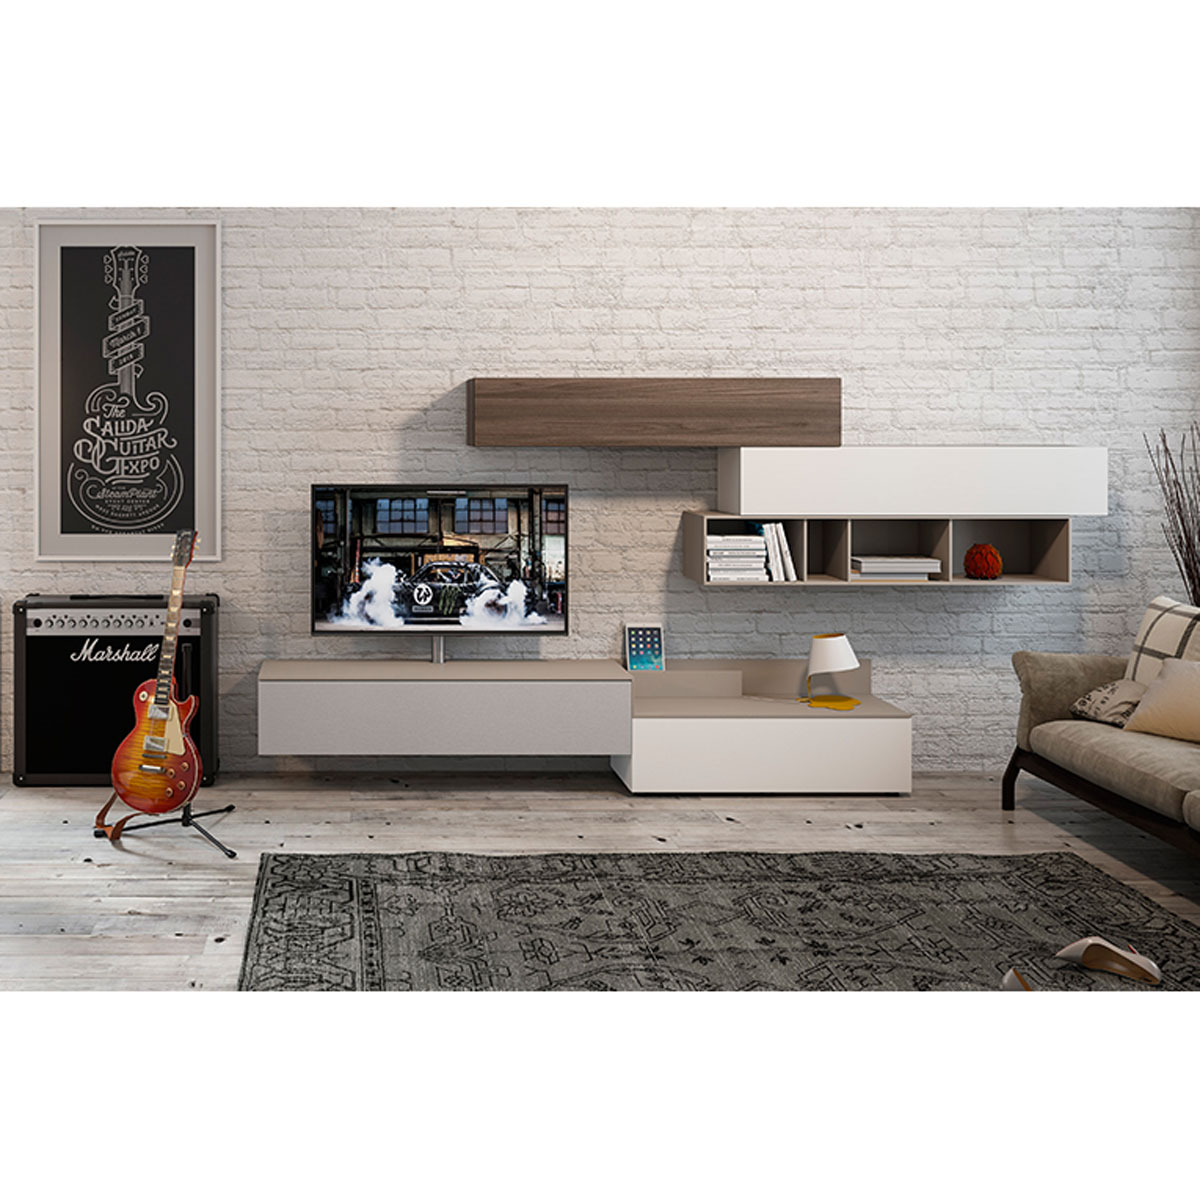 tv hifi lowboard spectral lowboard cocoon brick gebraucht with tv hifi lowboard gallery of. Black Bedroom Furniture Sets. Home Design Ideas